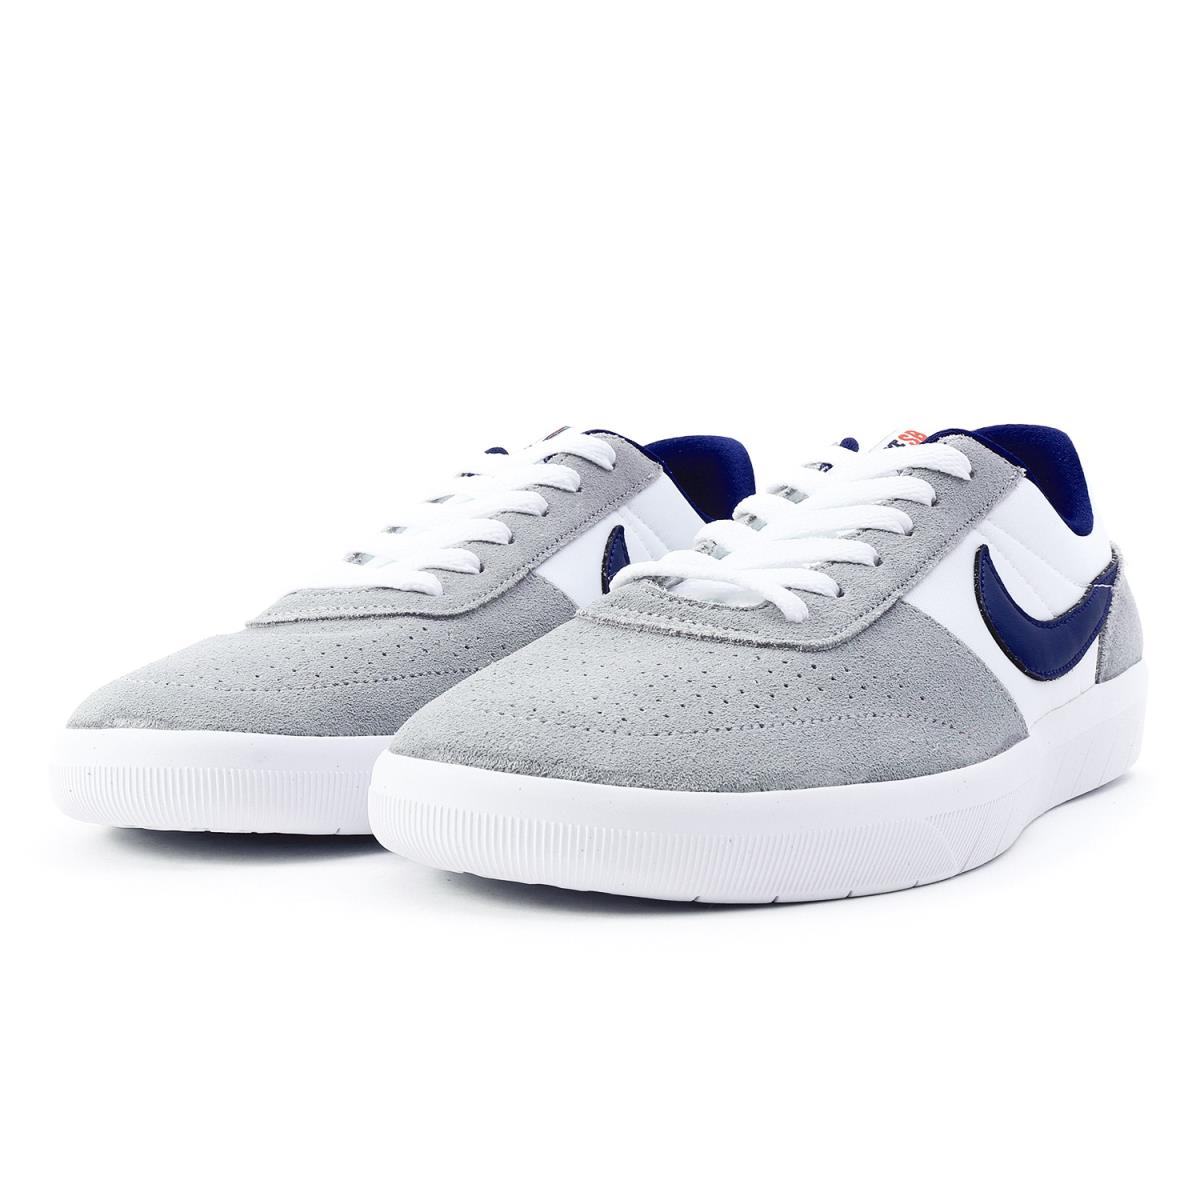 053be6d8a866 NIKE (Nike) SB TEAM CLASSIC (AH3360-002) wolf gray X blue void US8.5(26.5cm)